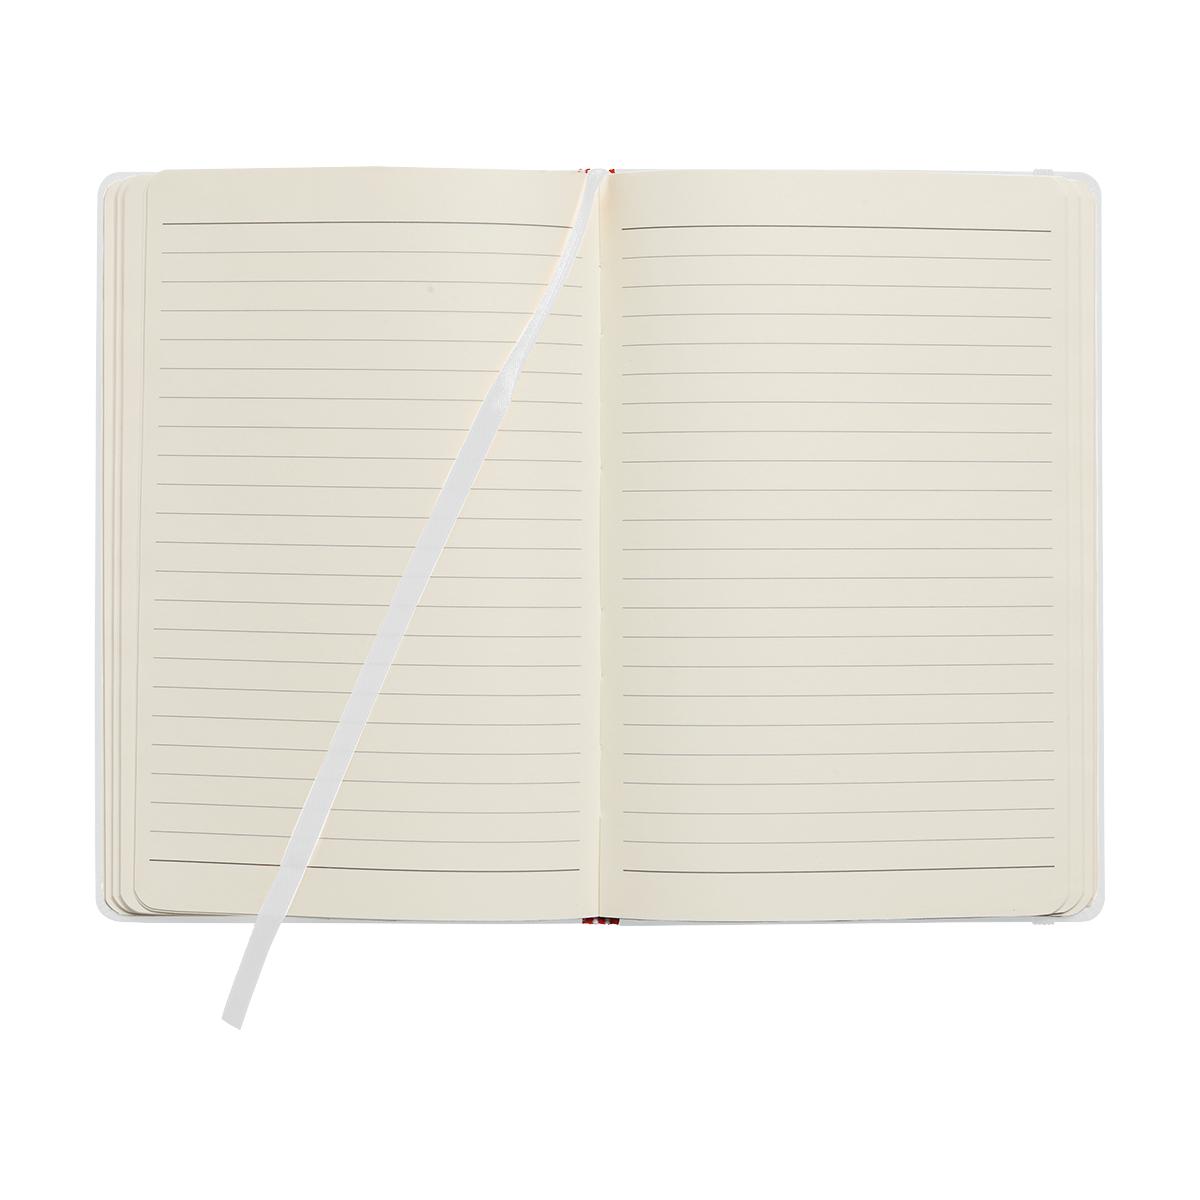 Cheap and easy business and pocket A5 notebooks with Helloprint. Learn more about us and order print online today.